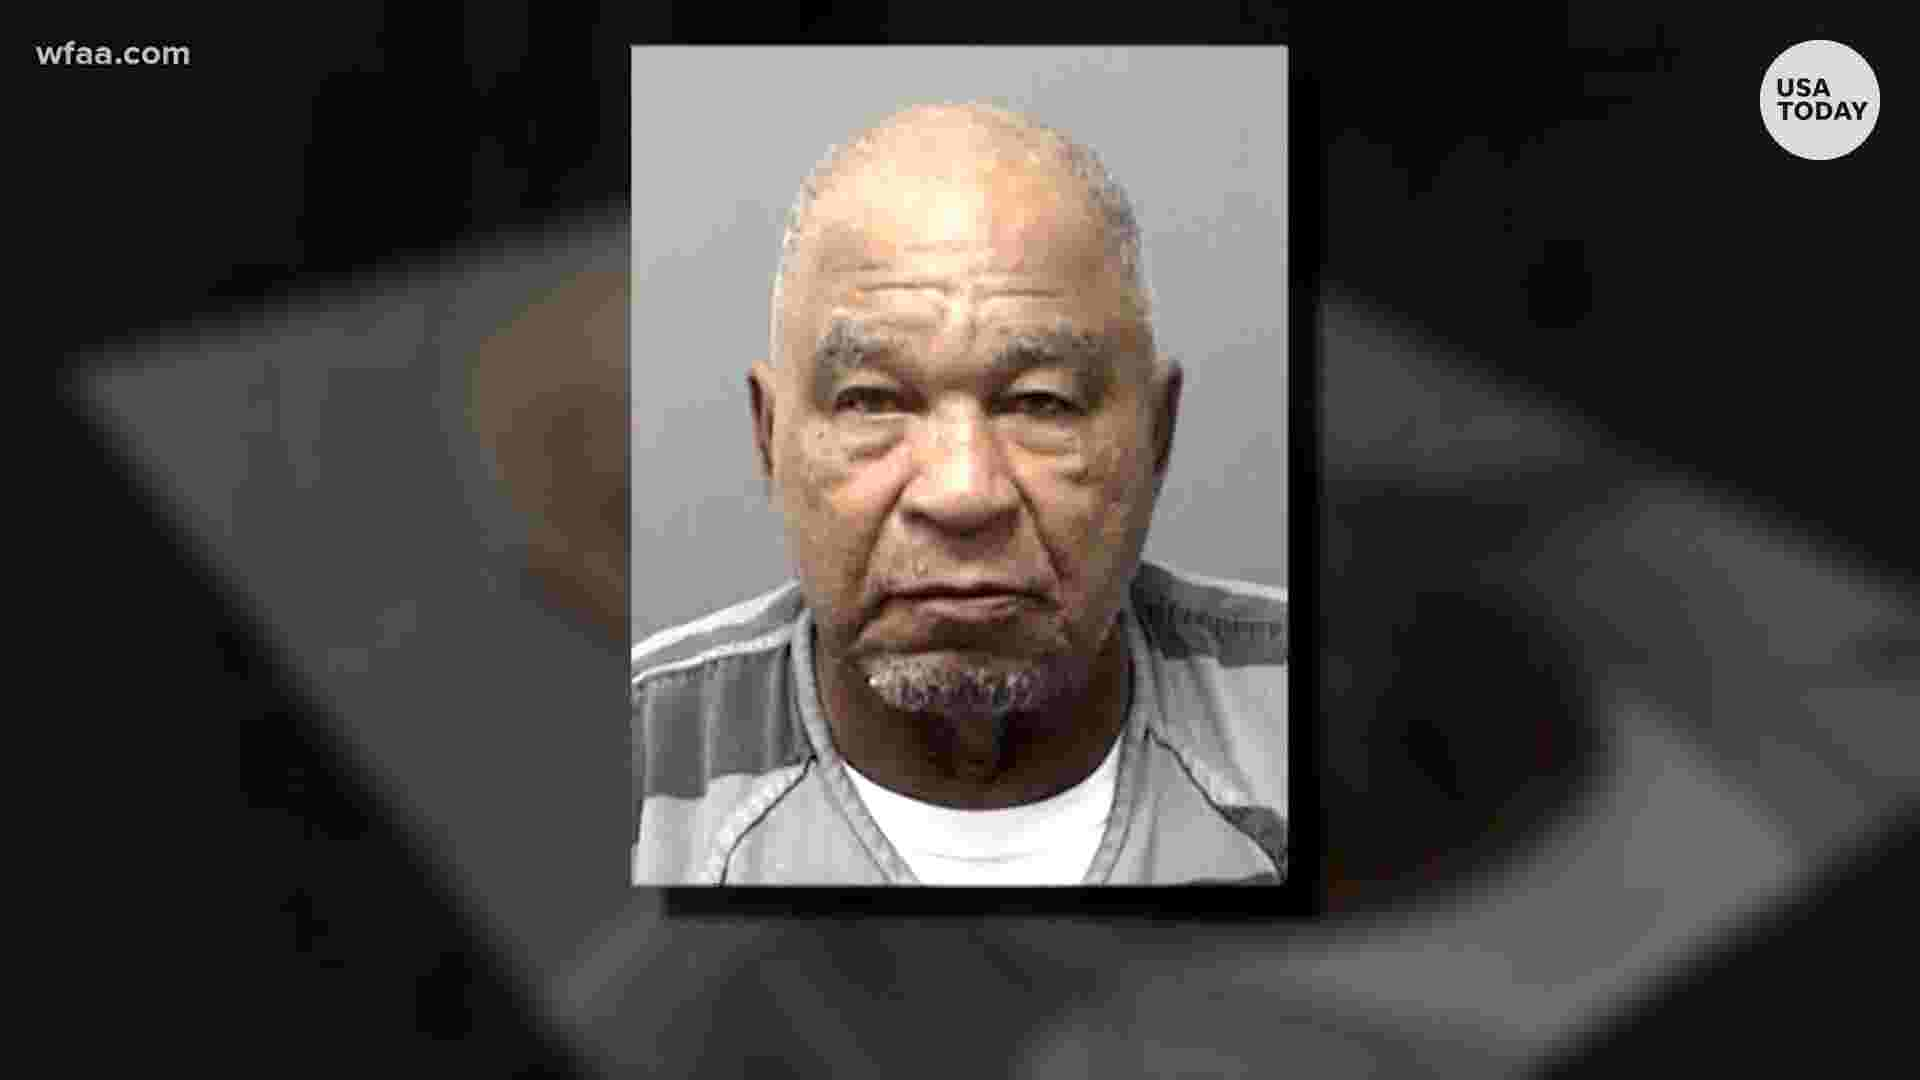 samuel little self proclaimed serial killer claims 3 tennessee victims